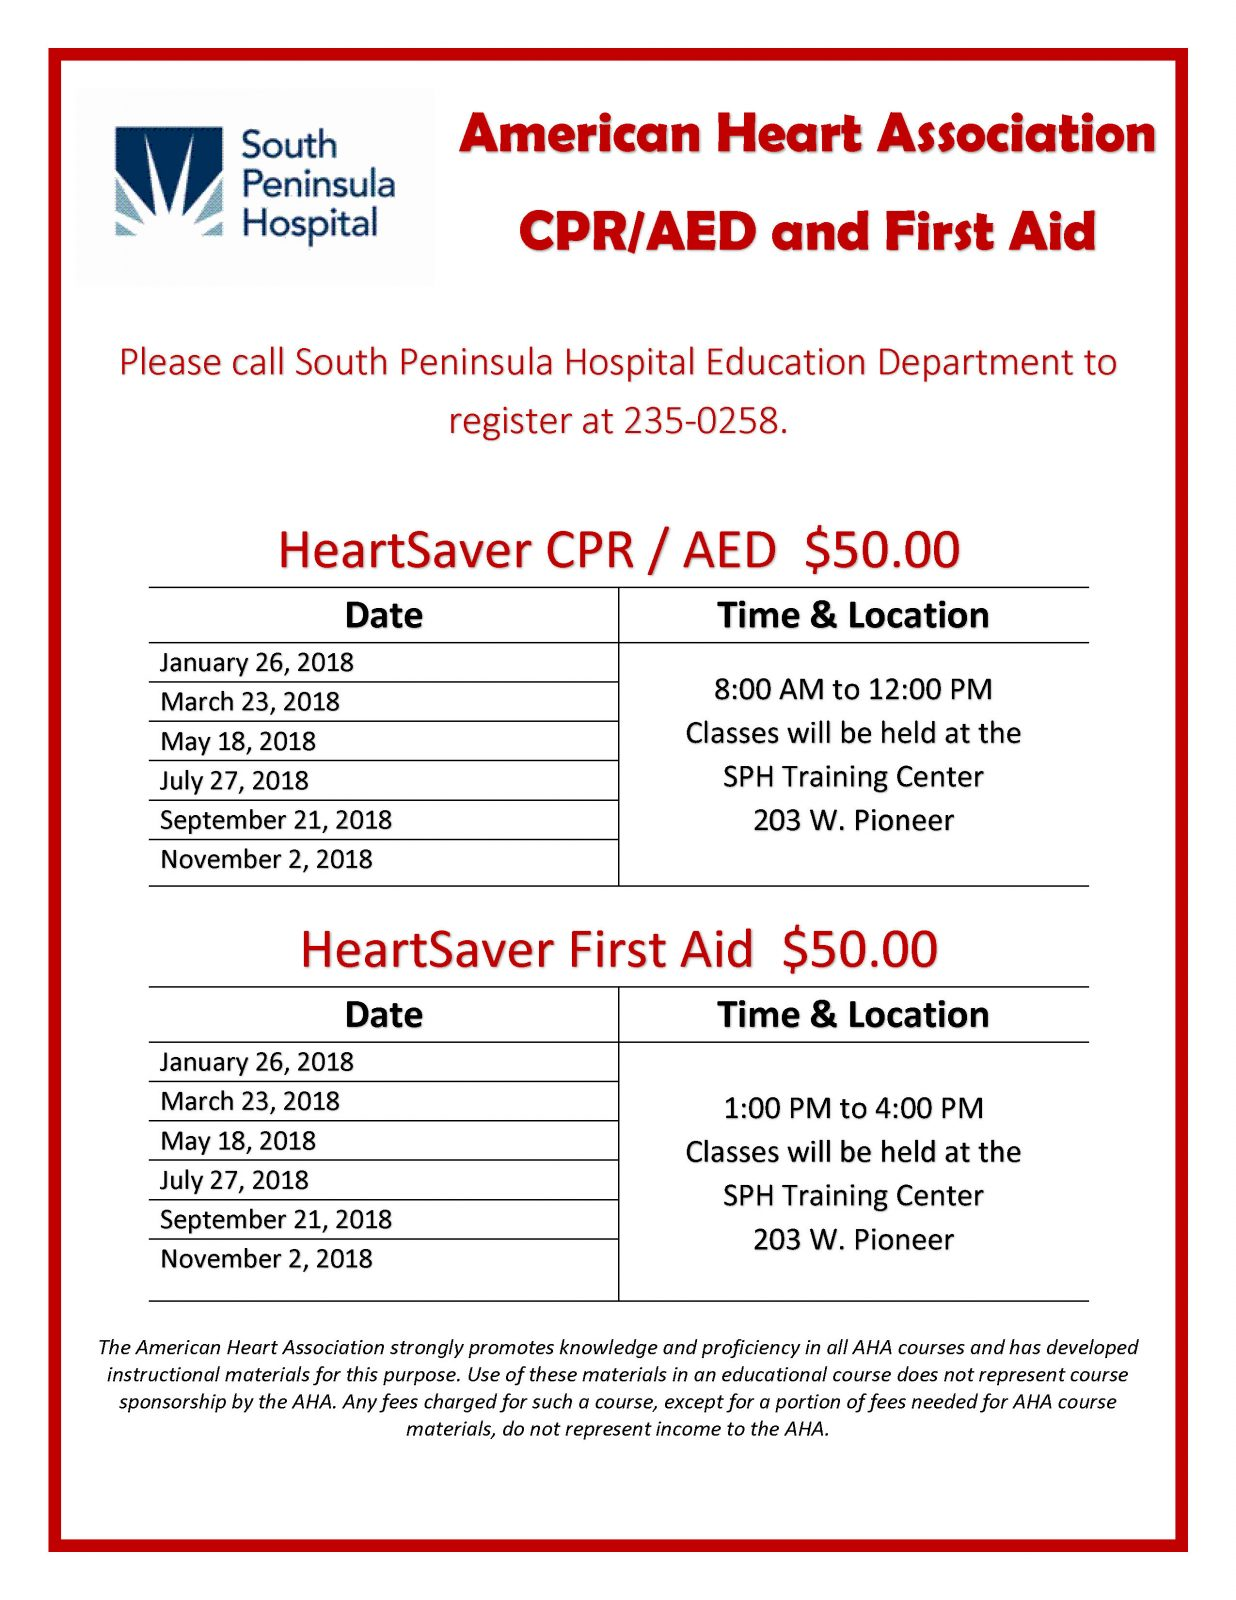 American Heart Association Cpraed And First Aid Classes South